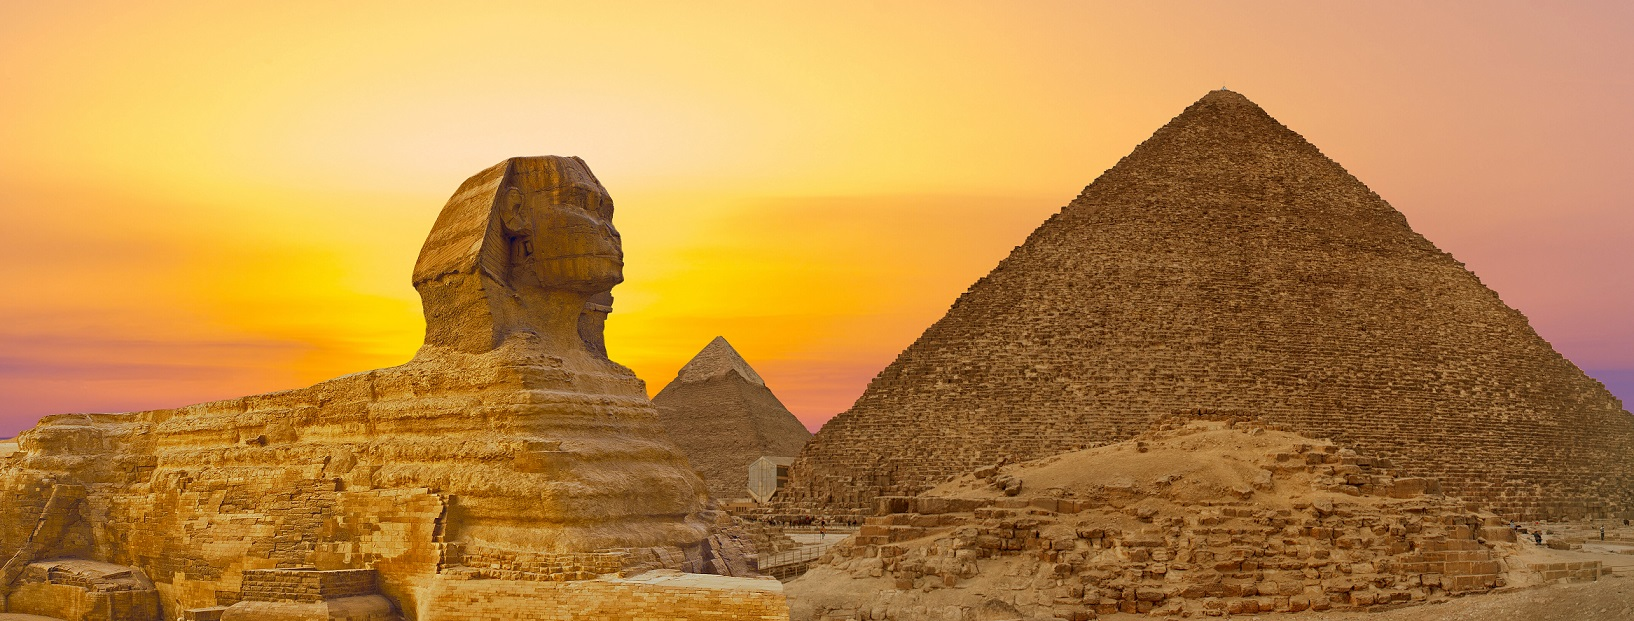 The Top 5 Things to Do in Egypt – From Nile Cruises to Cultural Wonders